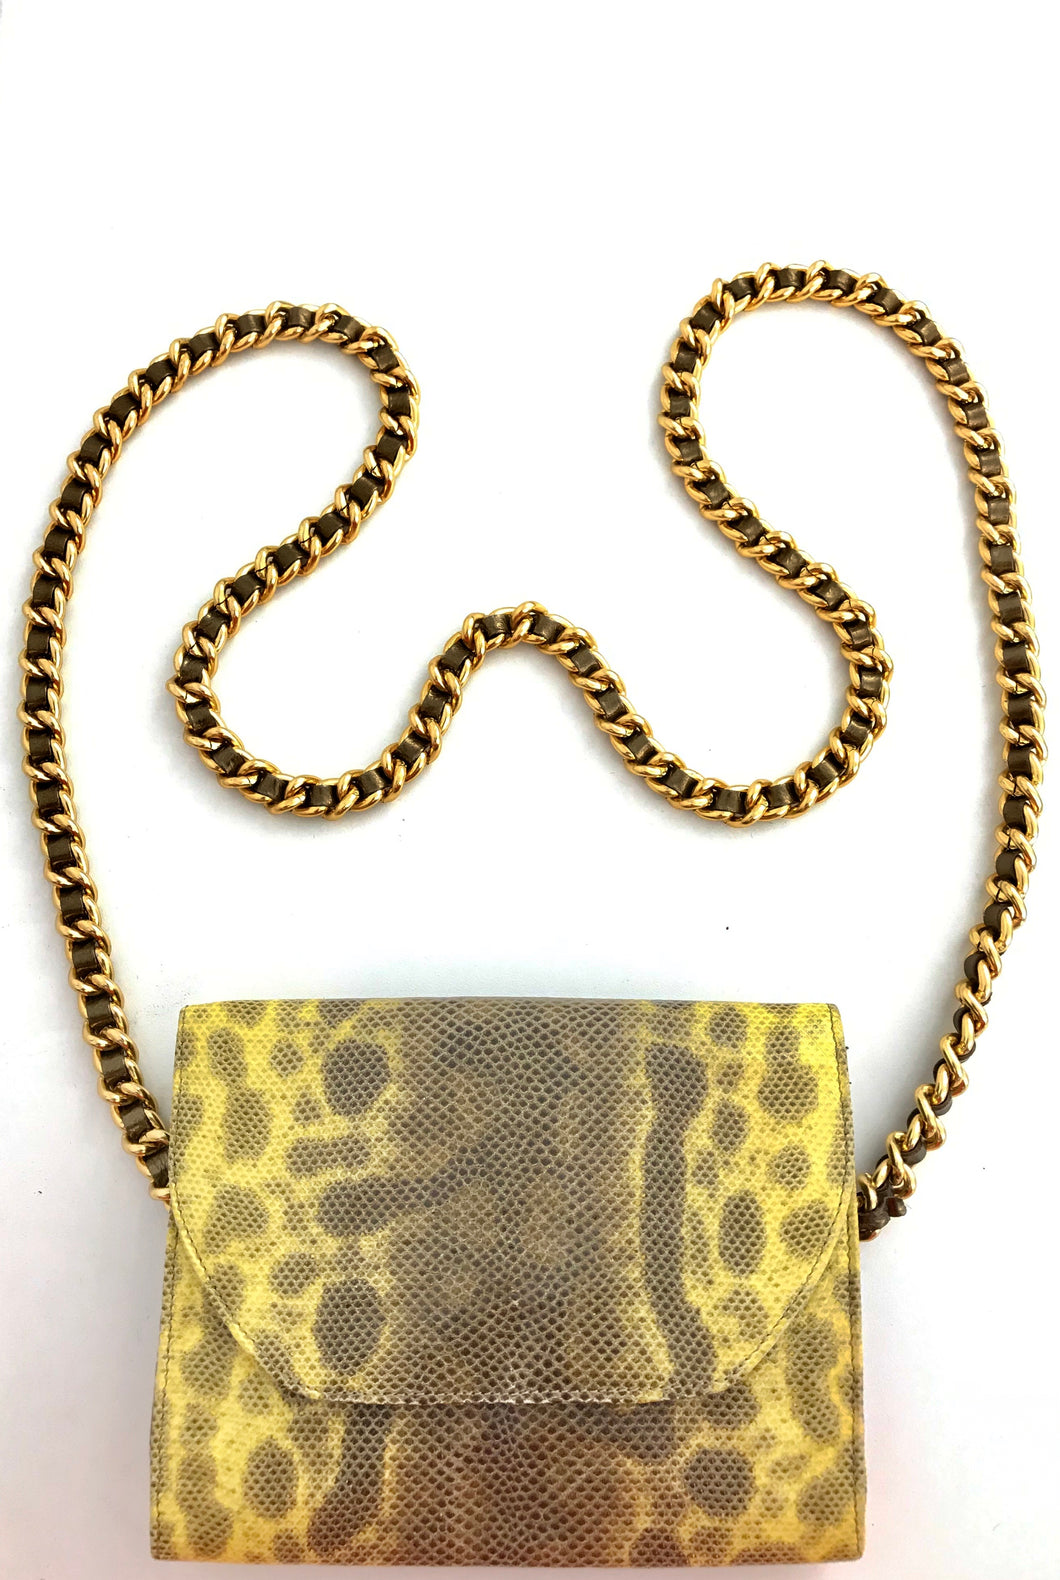 1980's Yellow Snake Print Leather Mini Purse by Arlene LaMarca